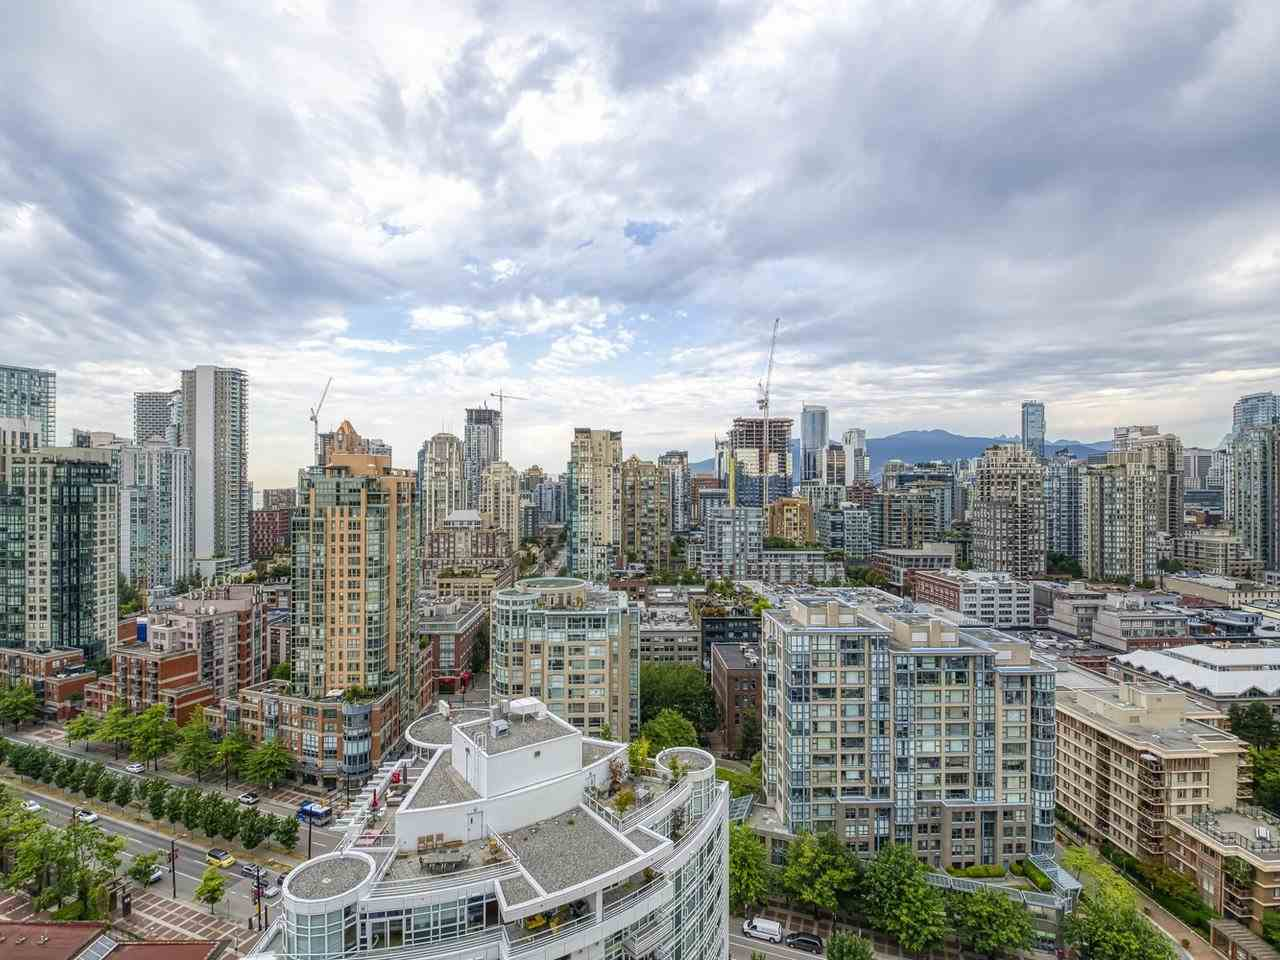 2905 1199 MARINASIDE CRESCENT - Yaletown Apartment/Condo for sale, 1 Bedroom (R2482109) - #1